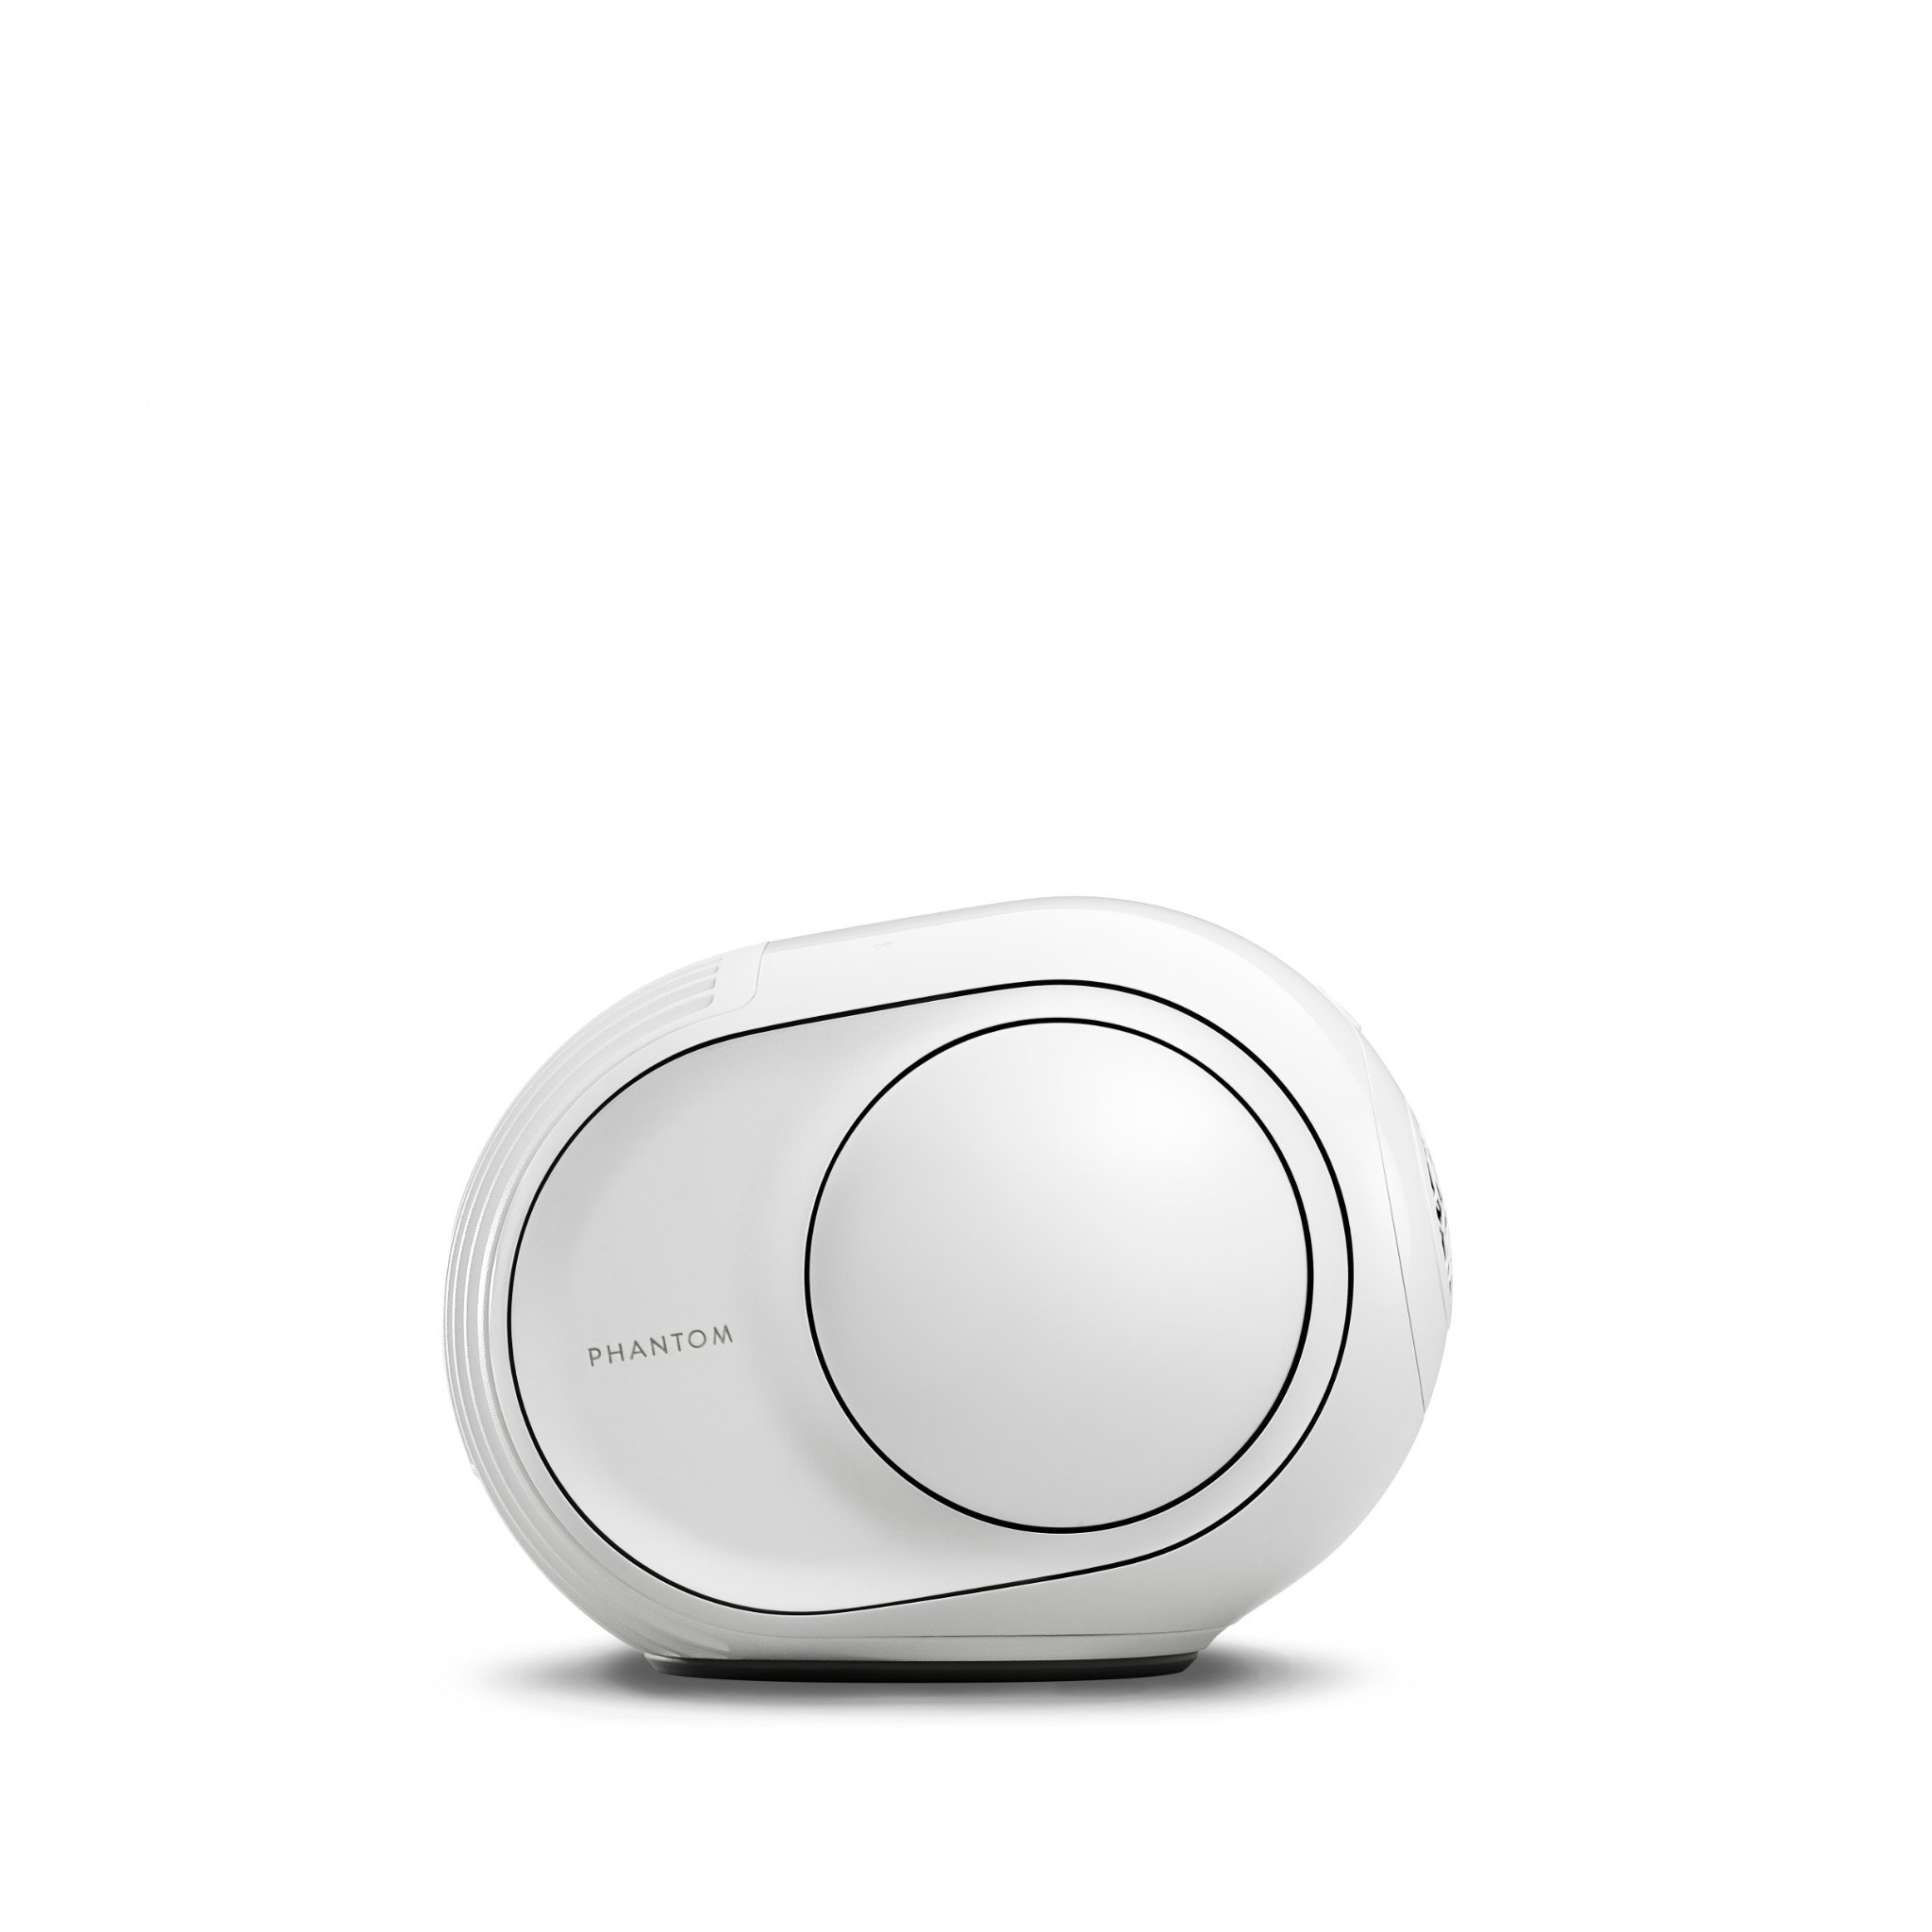 devialet-phantom-reactor-900